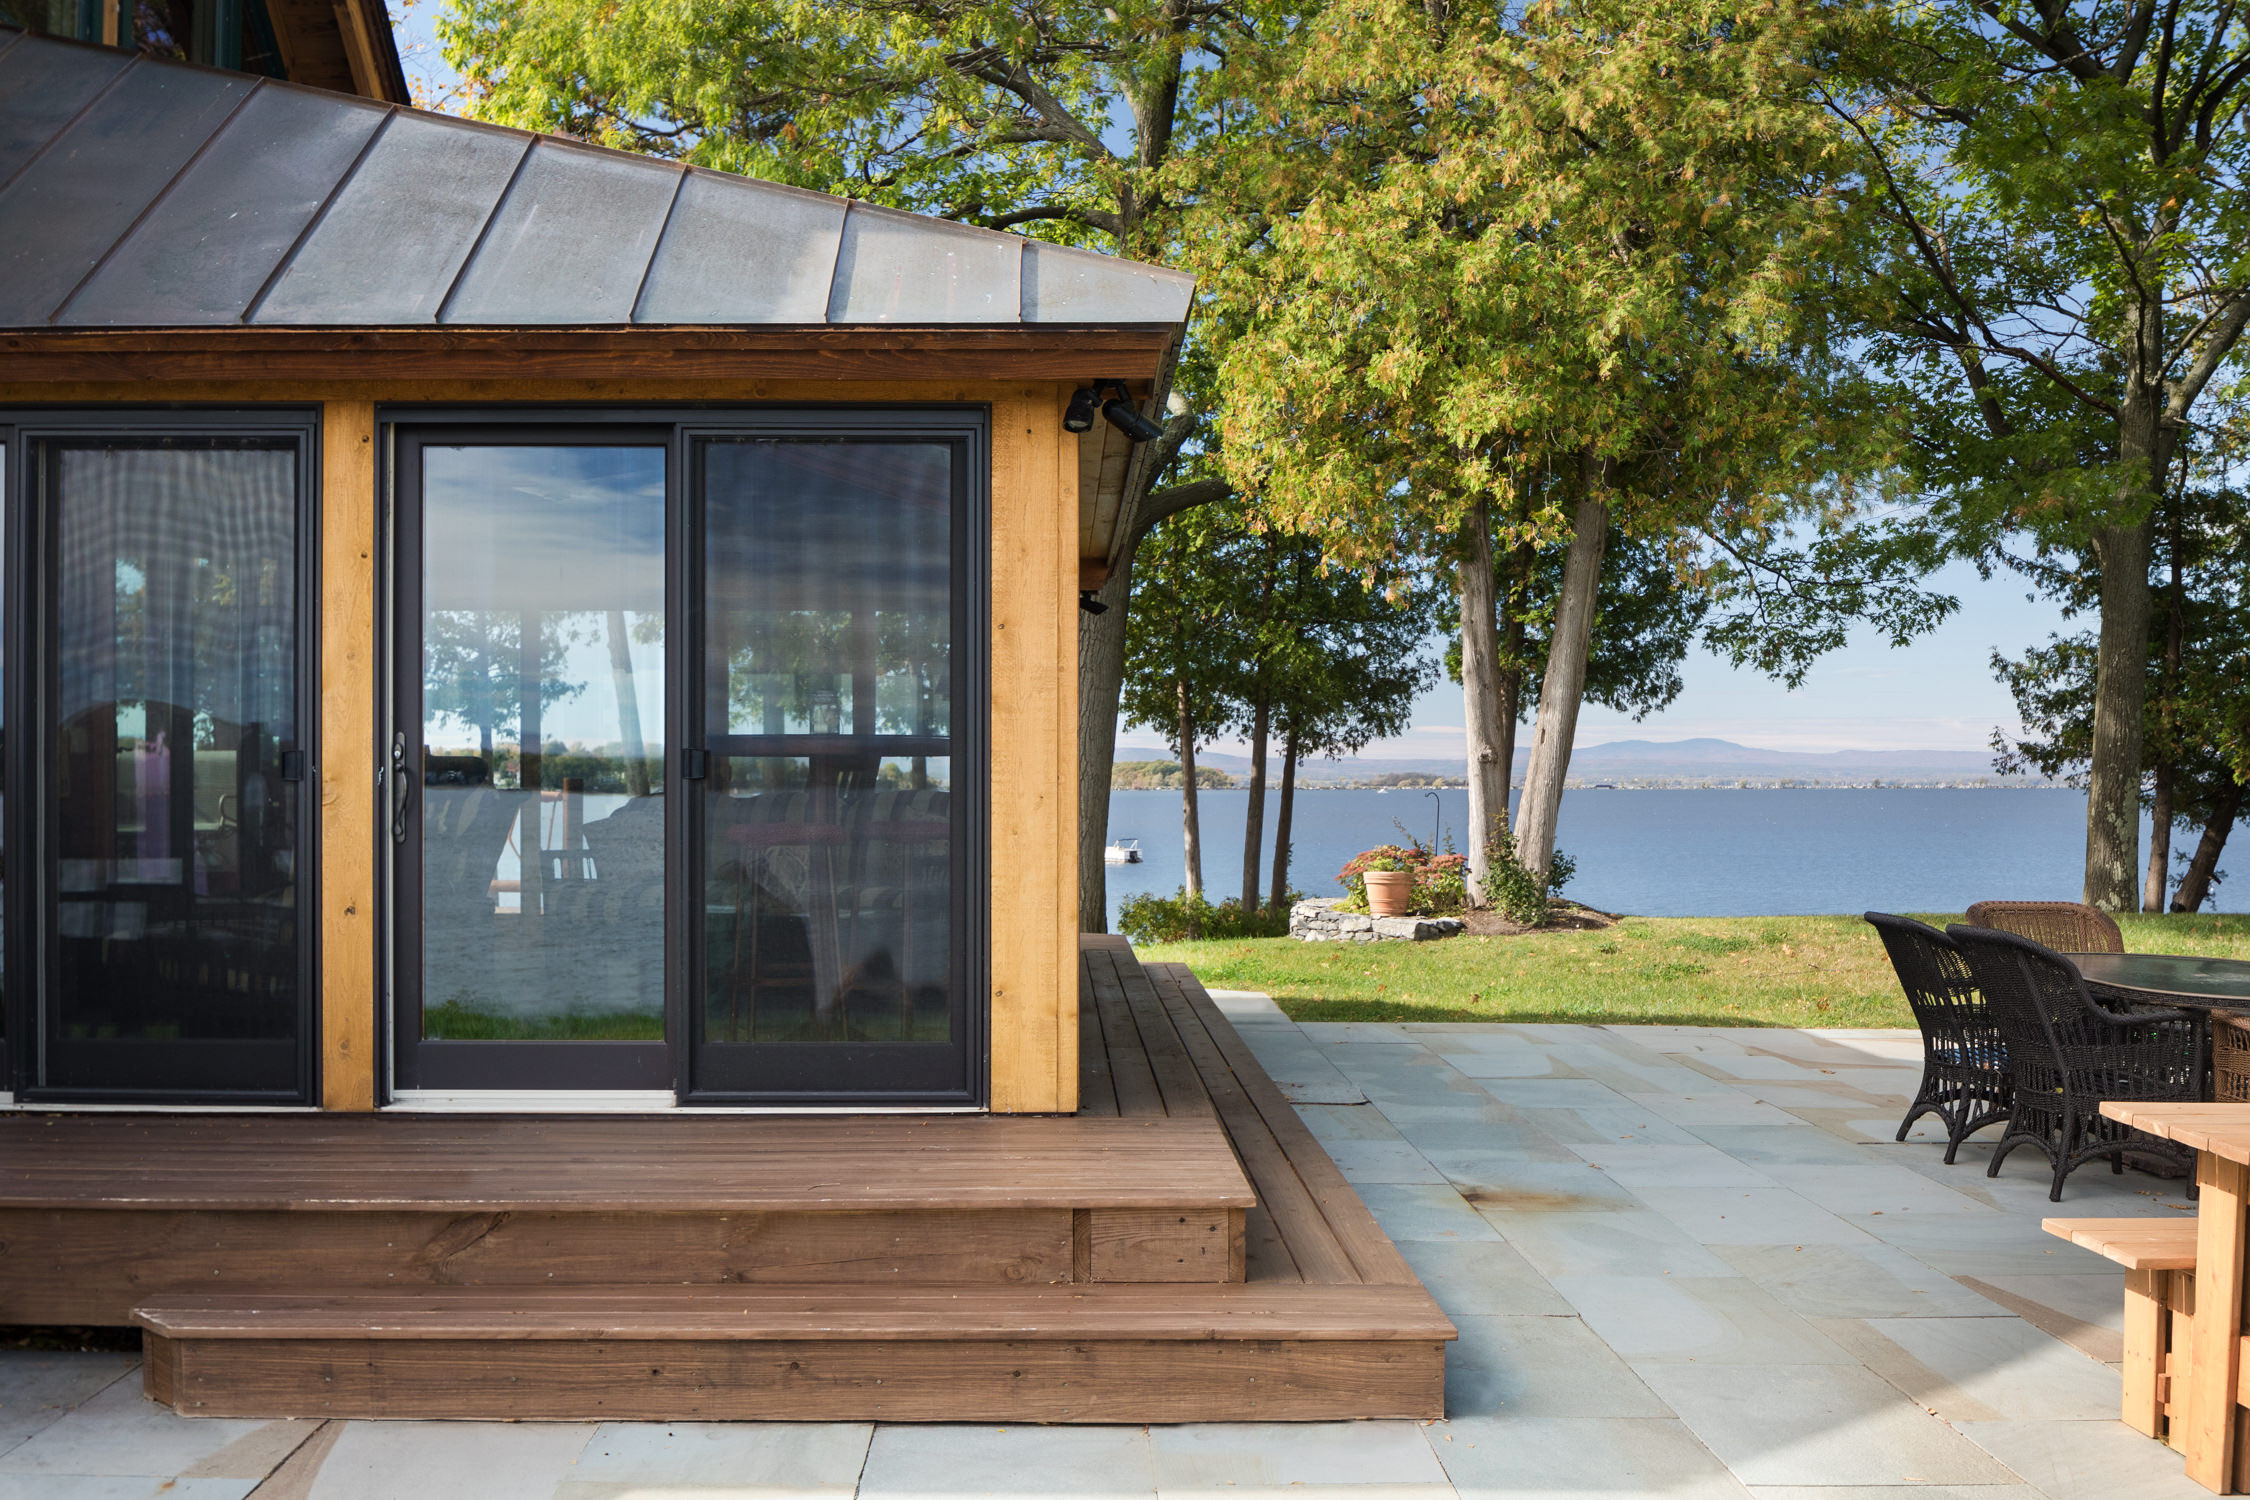 Exterior photo of the sunroom and surrounding lake views in an Adirondack style lake house renovation by Wiemann Lamphere Architects and photographed by Vermont photographer Stina Booth of Studio SB.,